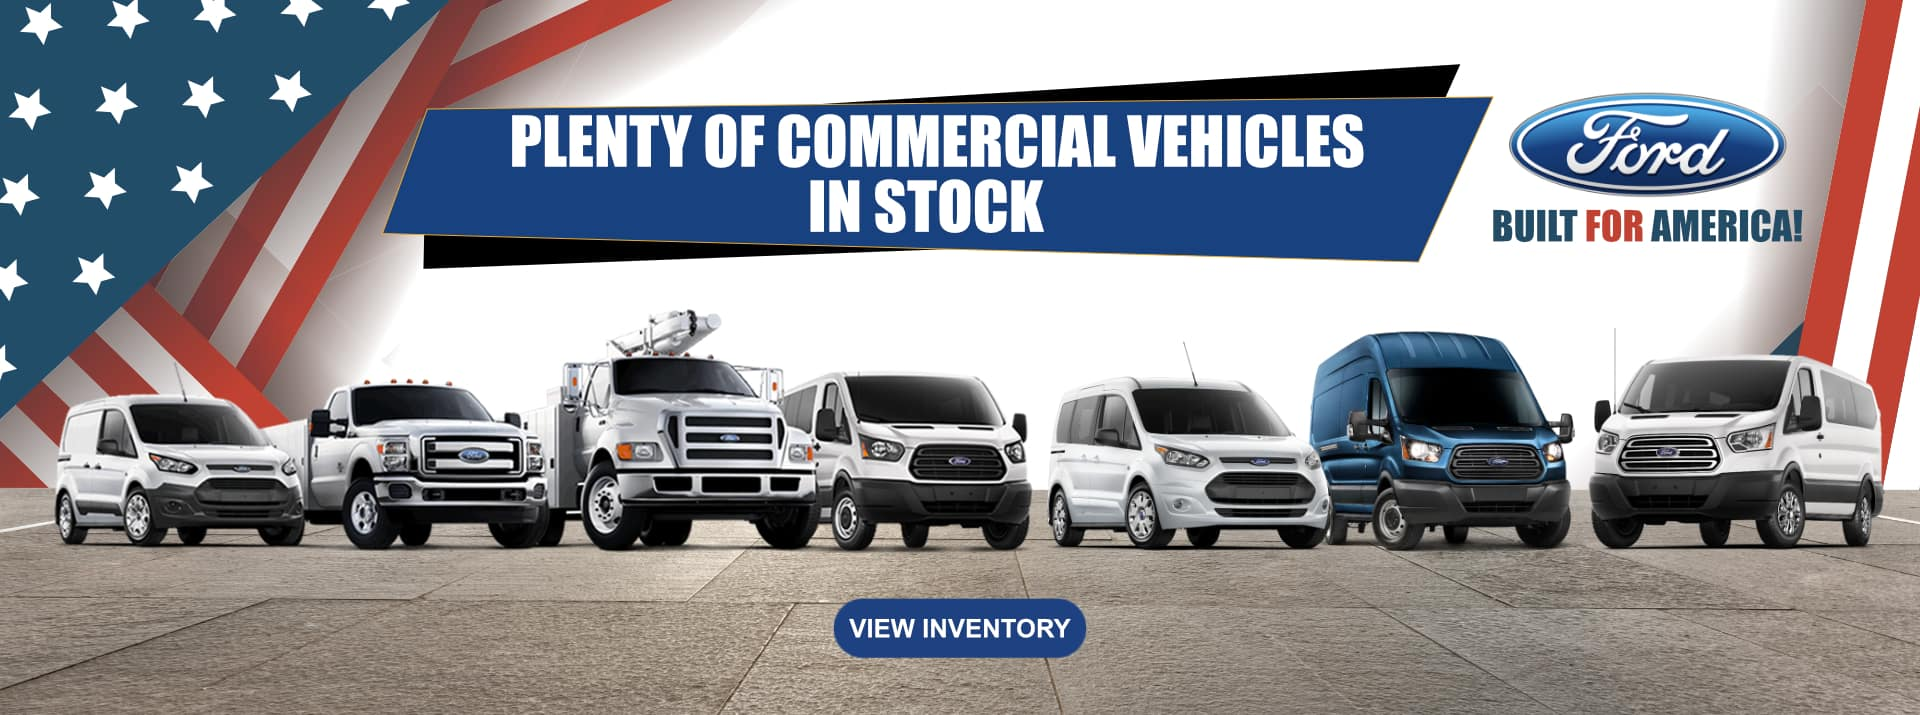 Palm Springs Motors Commercial Vehicles 1920×715 Banner